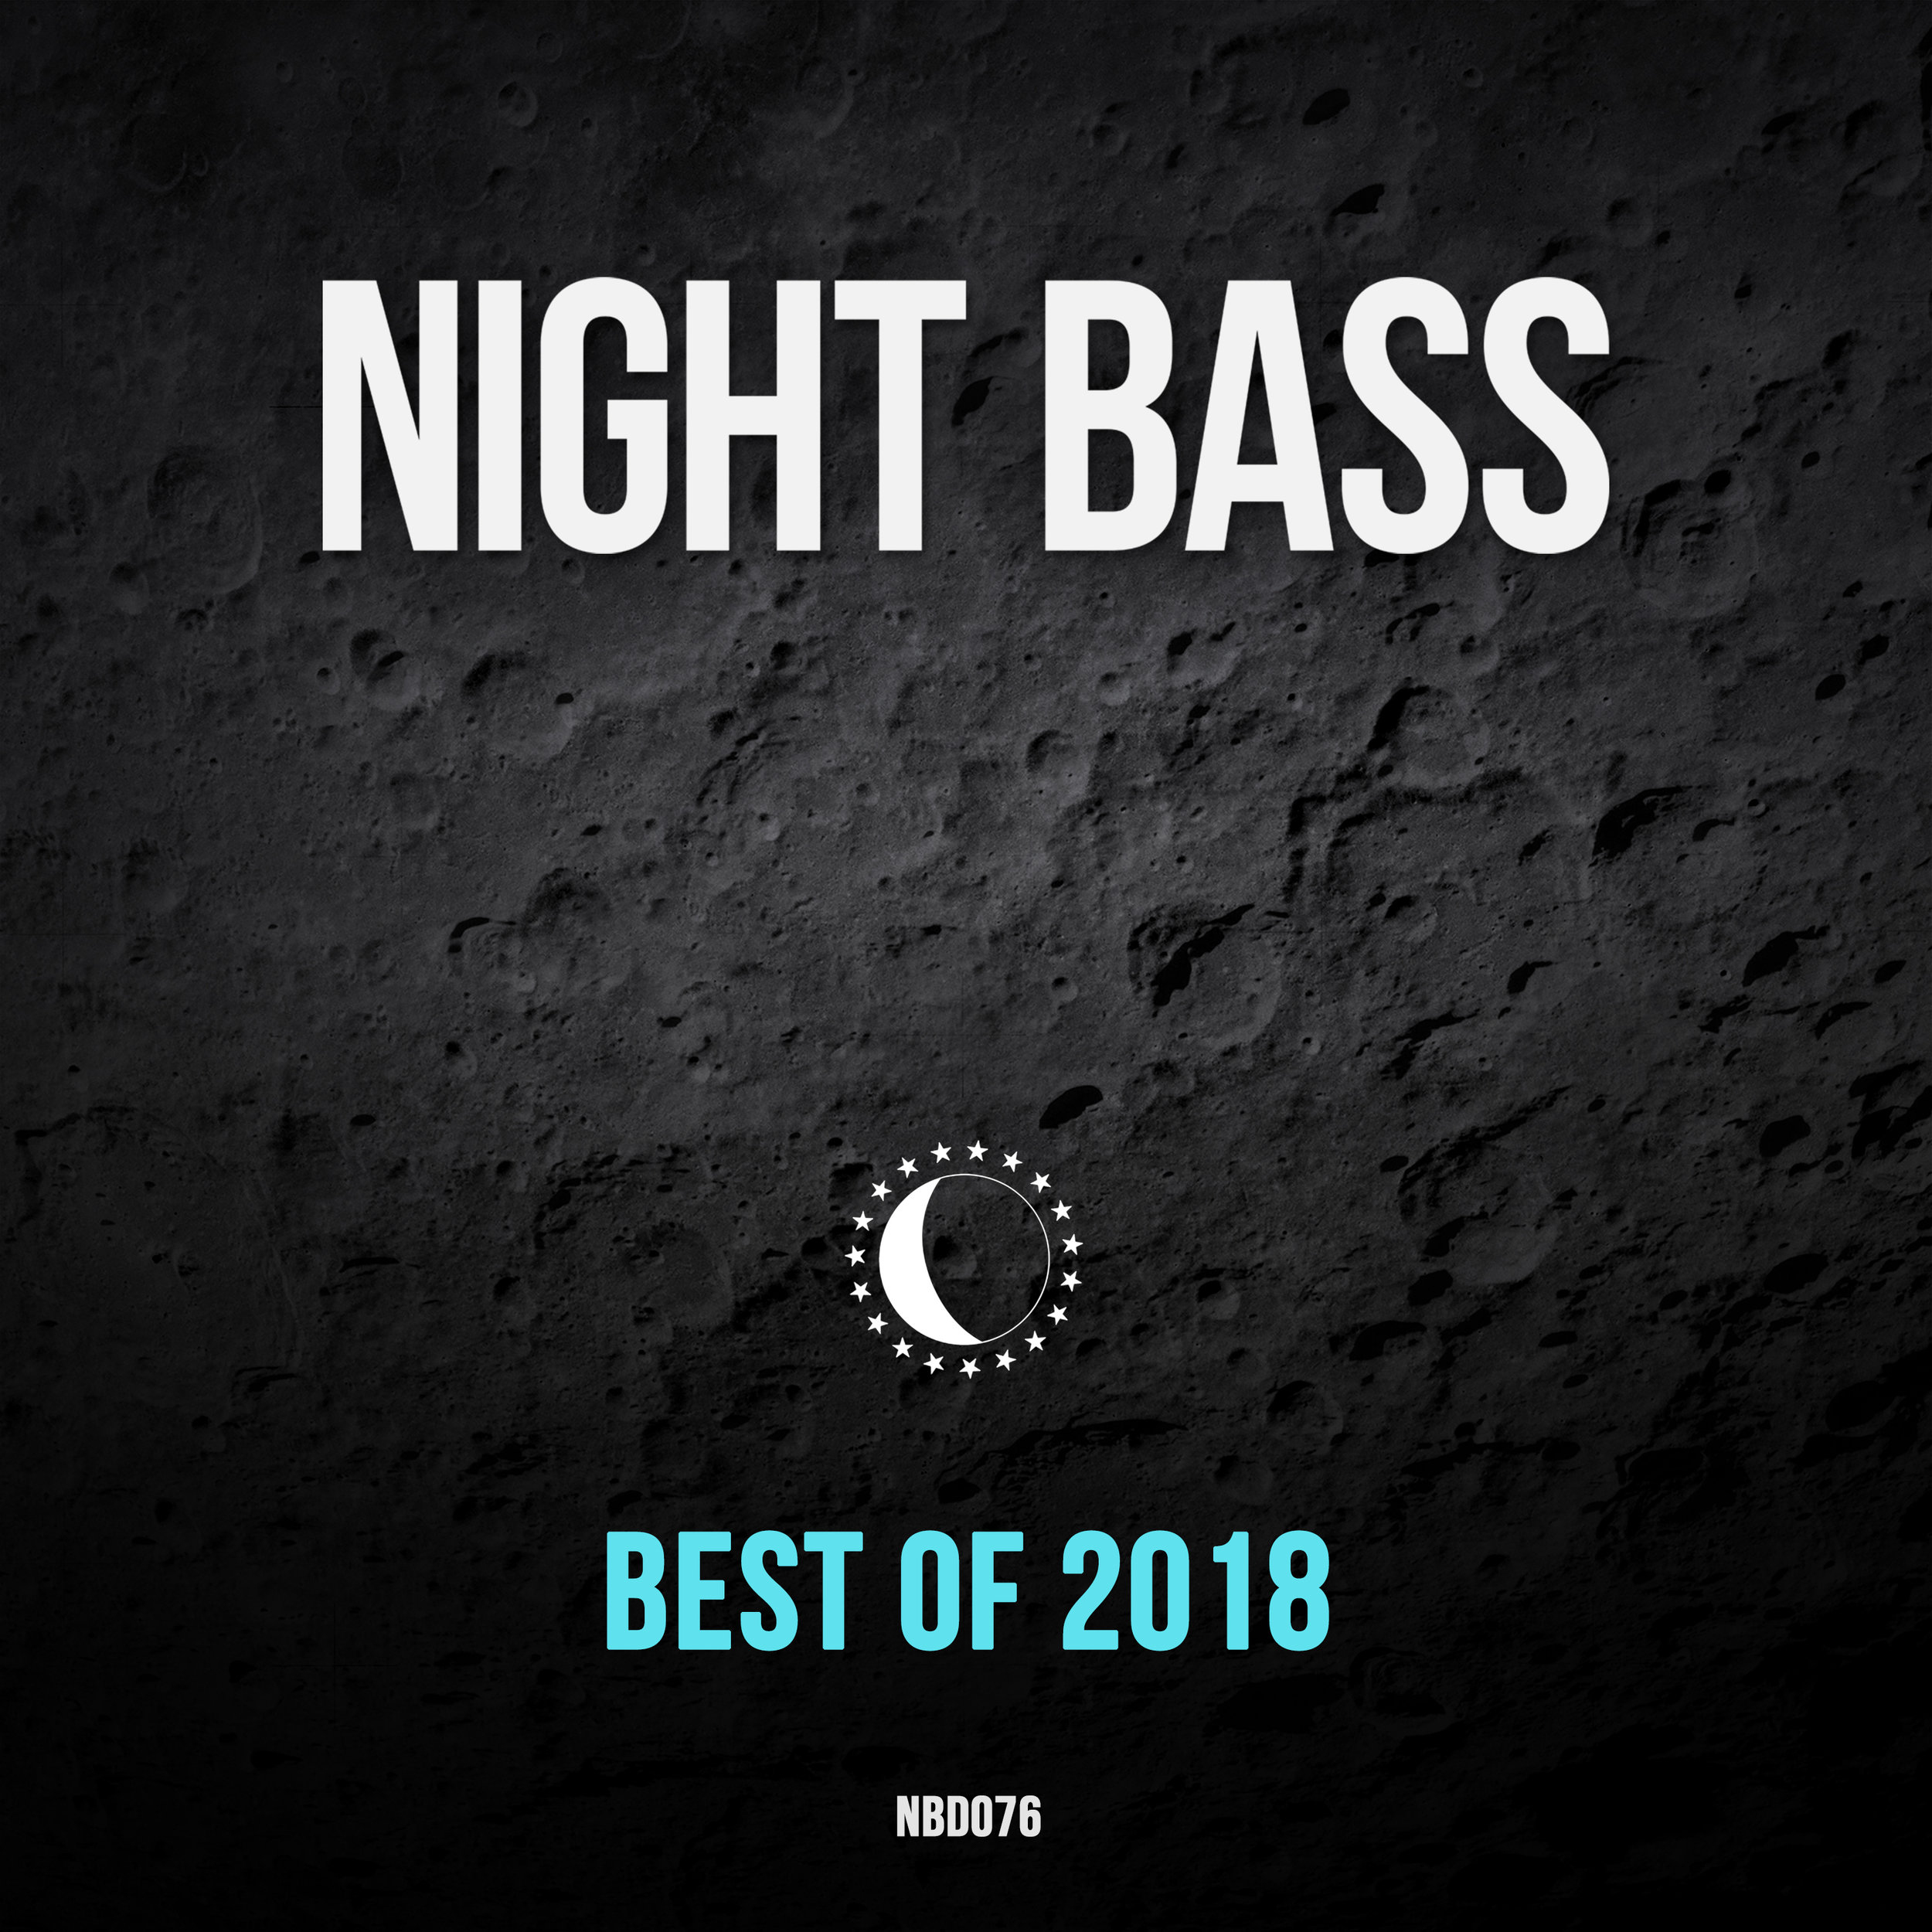 Best of Night Bass 2018.jpg